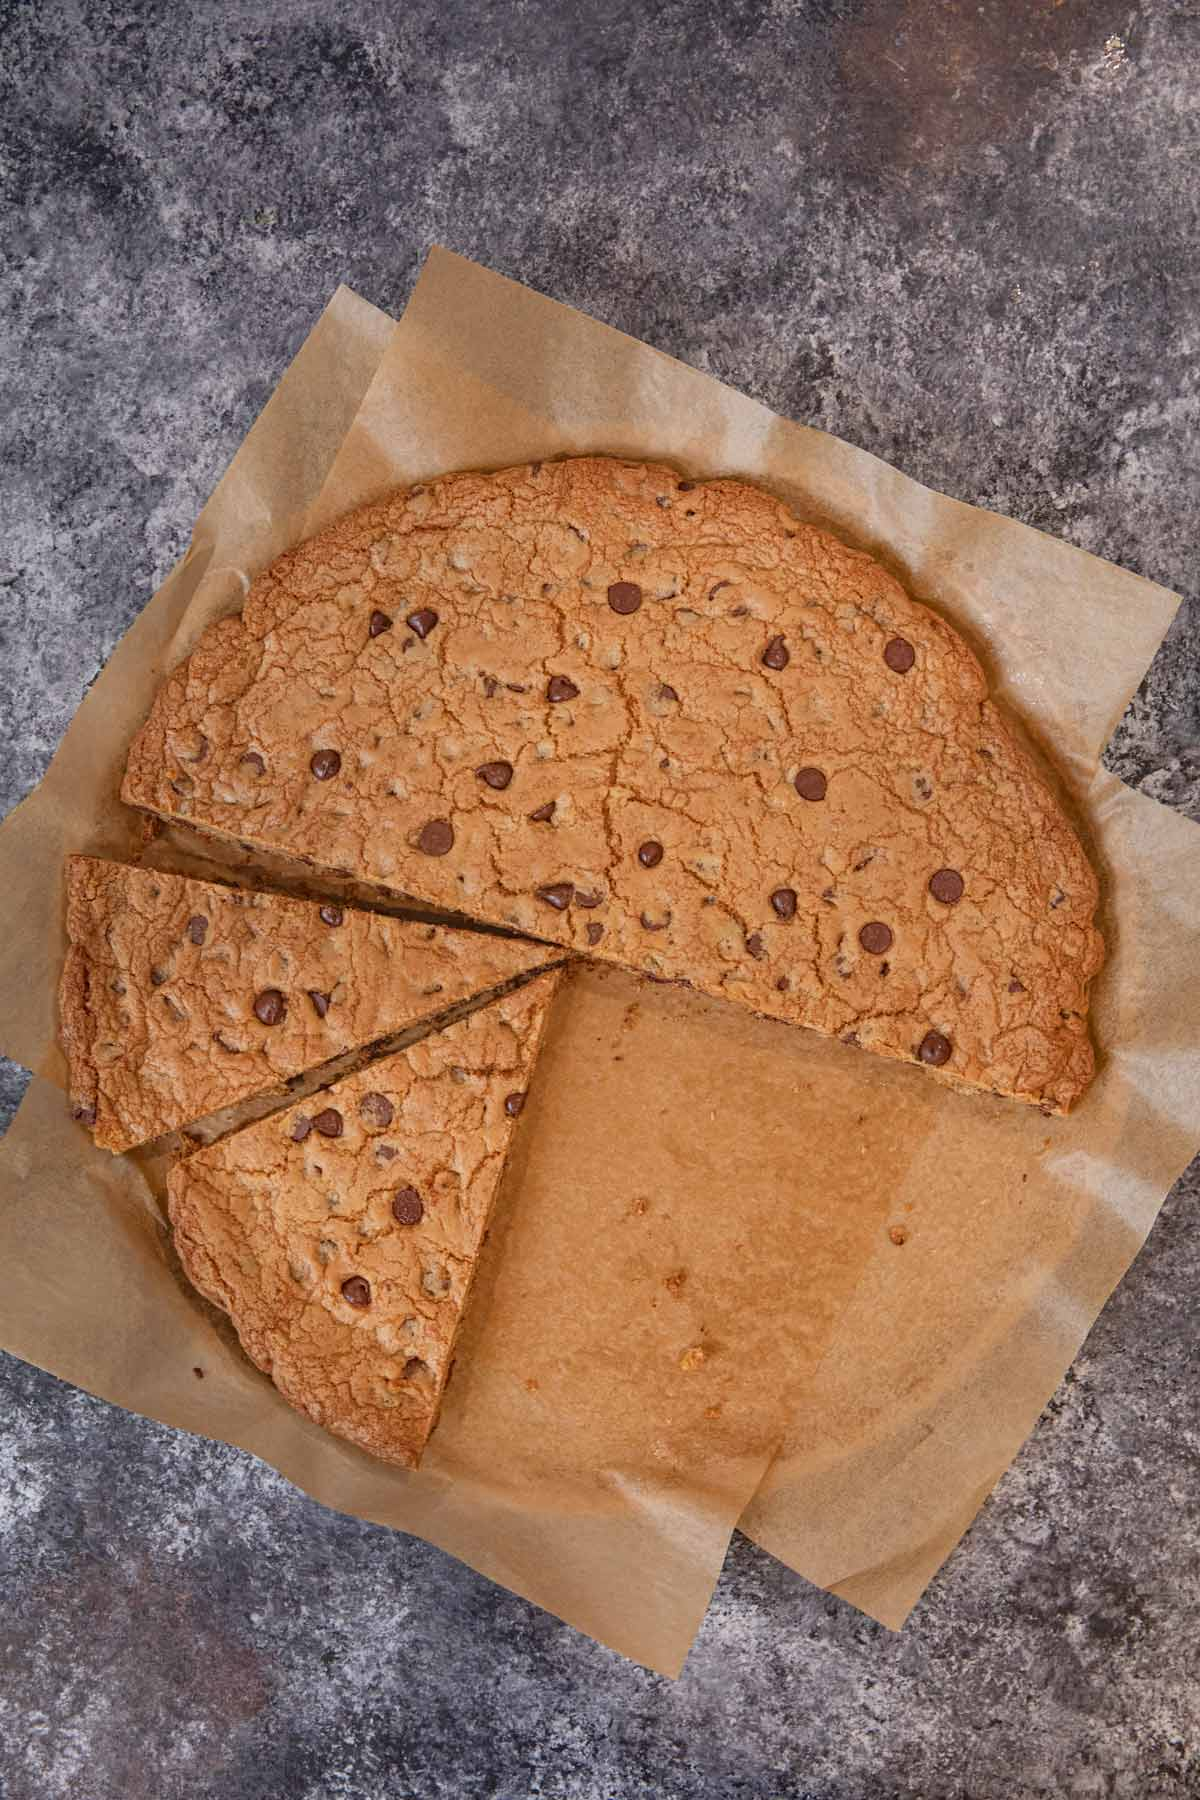 Giant Chocolate Chip Cookie sliced on parchment paper